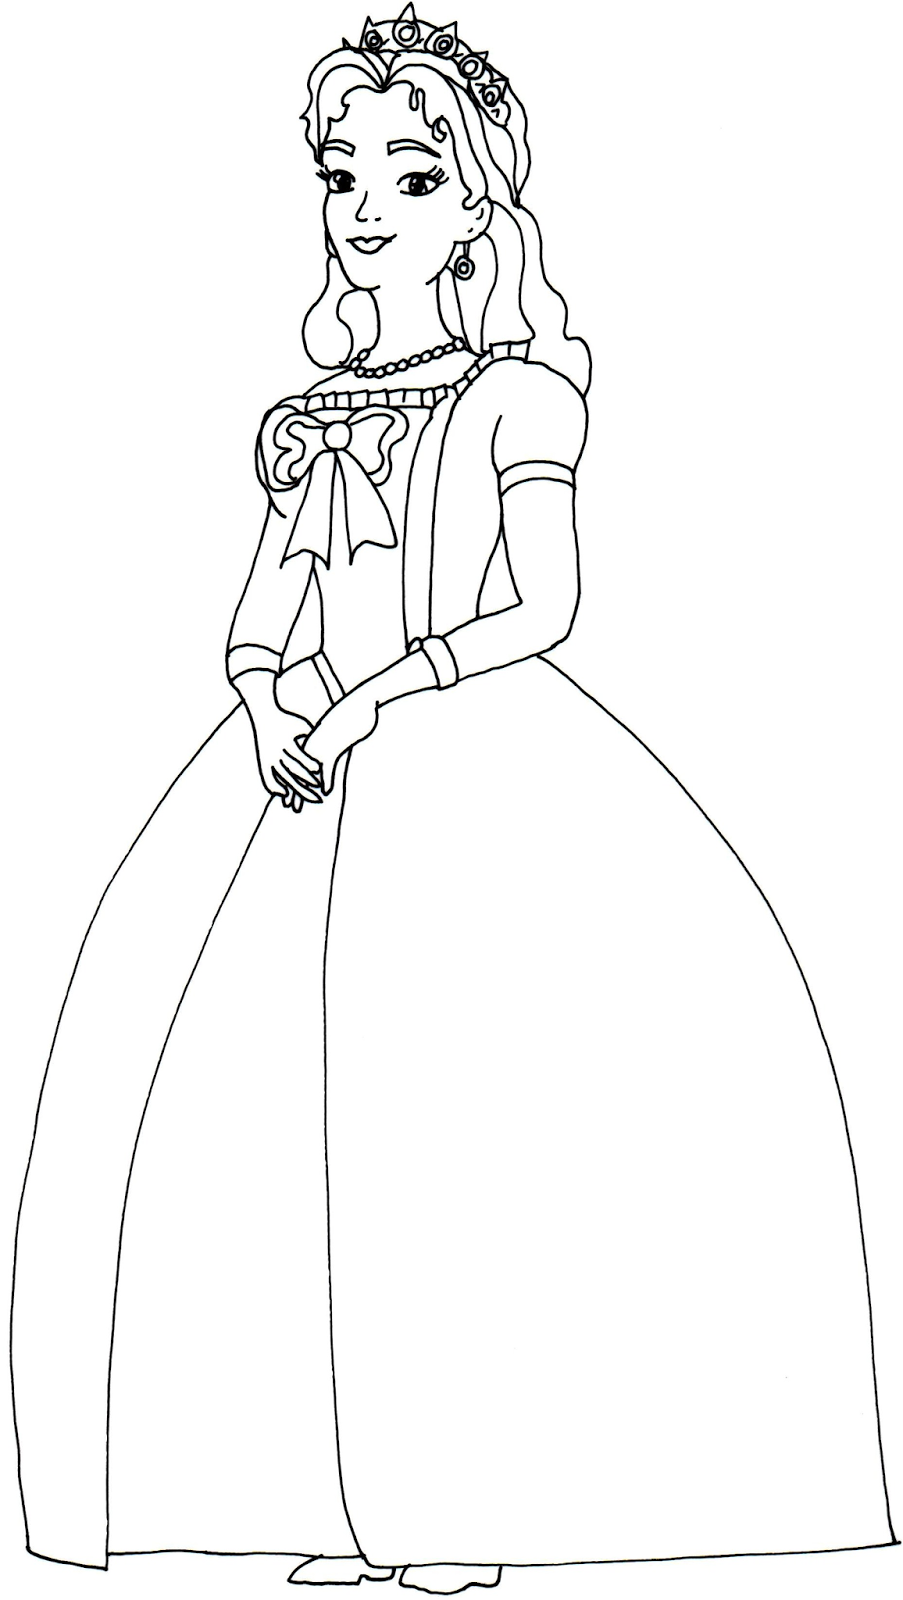 20 Free Printable Sofia the First Coloring Pages